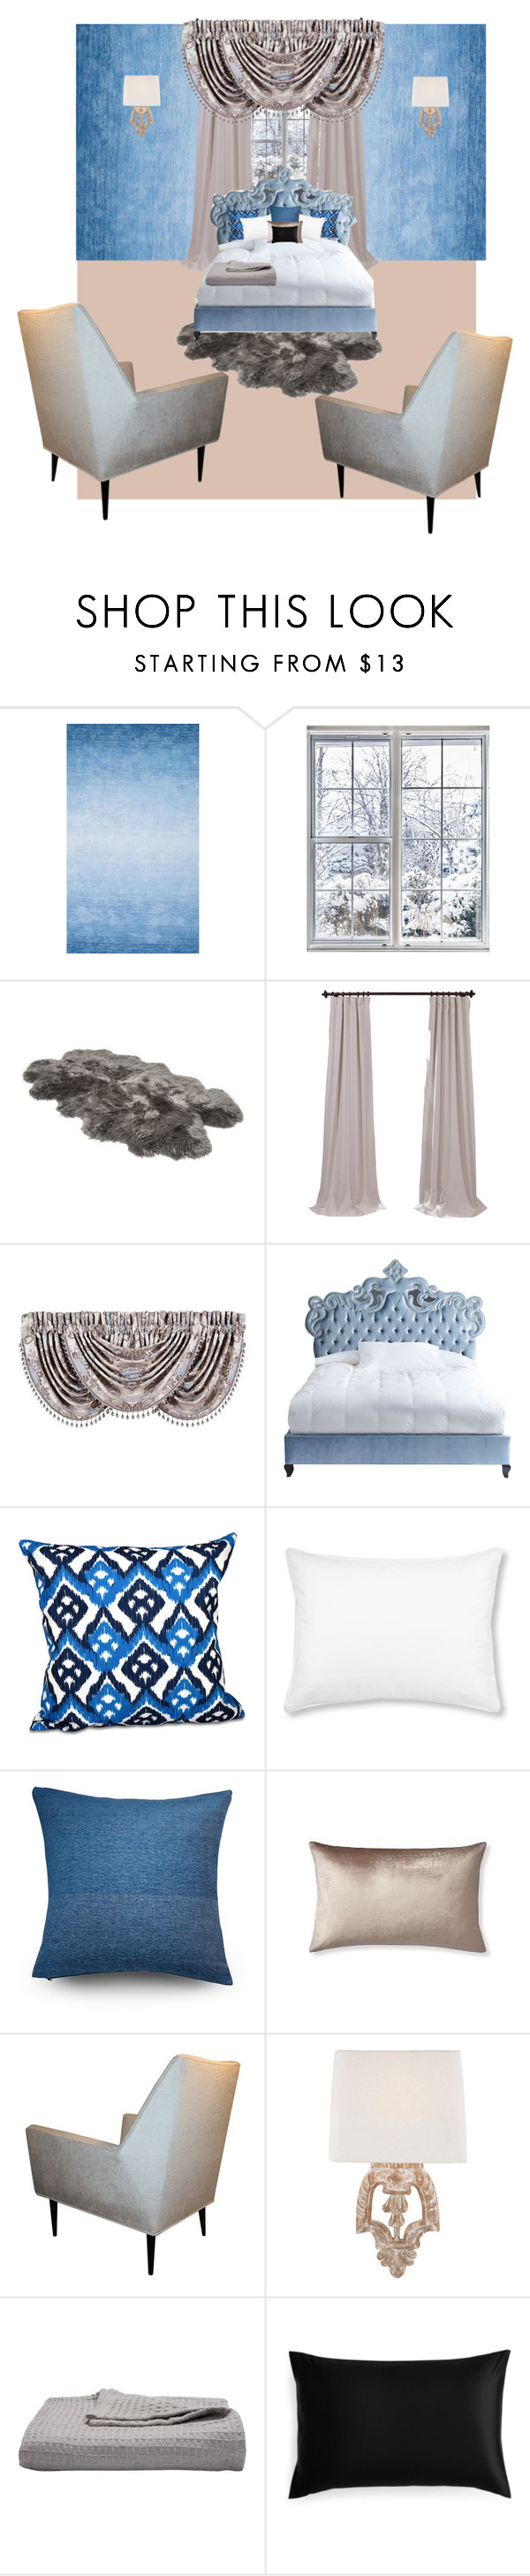 """Başlıksız #62"" by saynur-kirazli ❤ liked on Polyvore featuring interior, interiors, interior design, home, home decor, interior decorating, nuLOOM, UGG, J. Queen New York and Haute House"